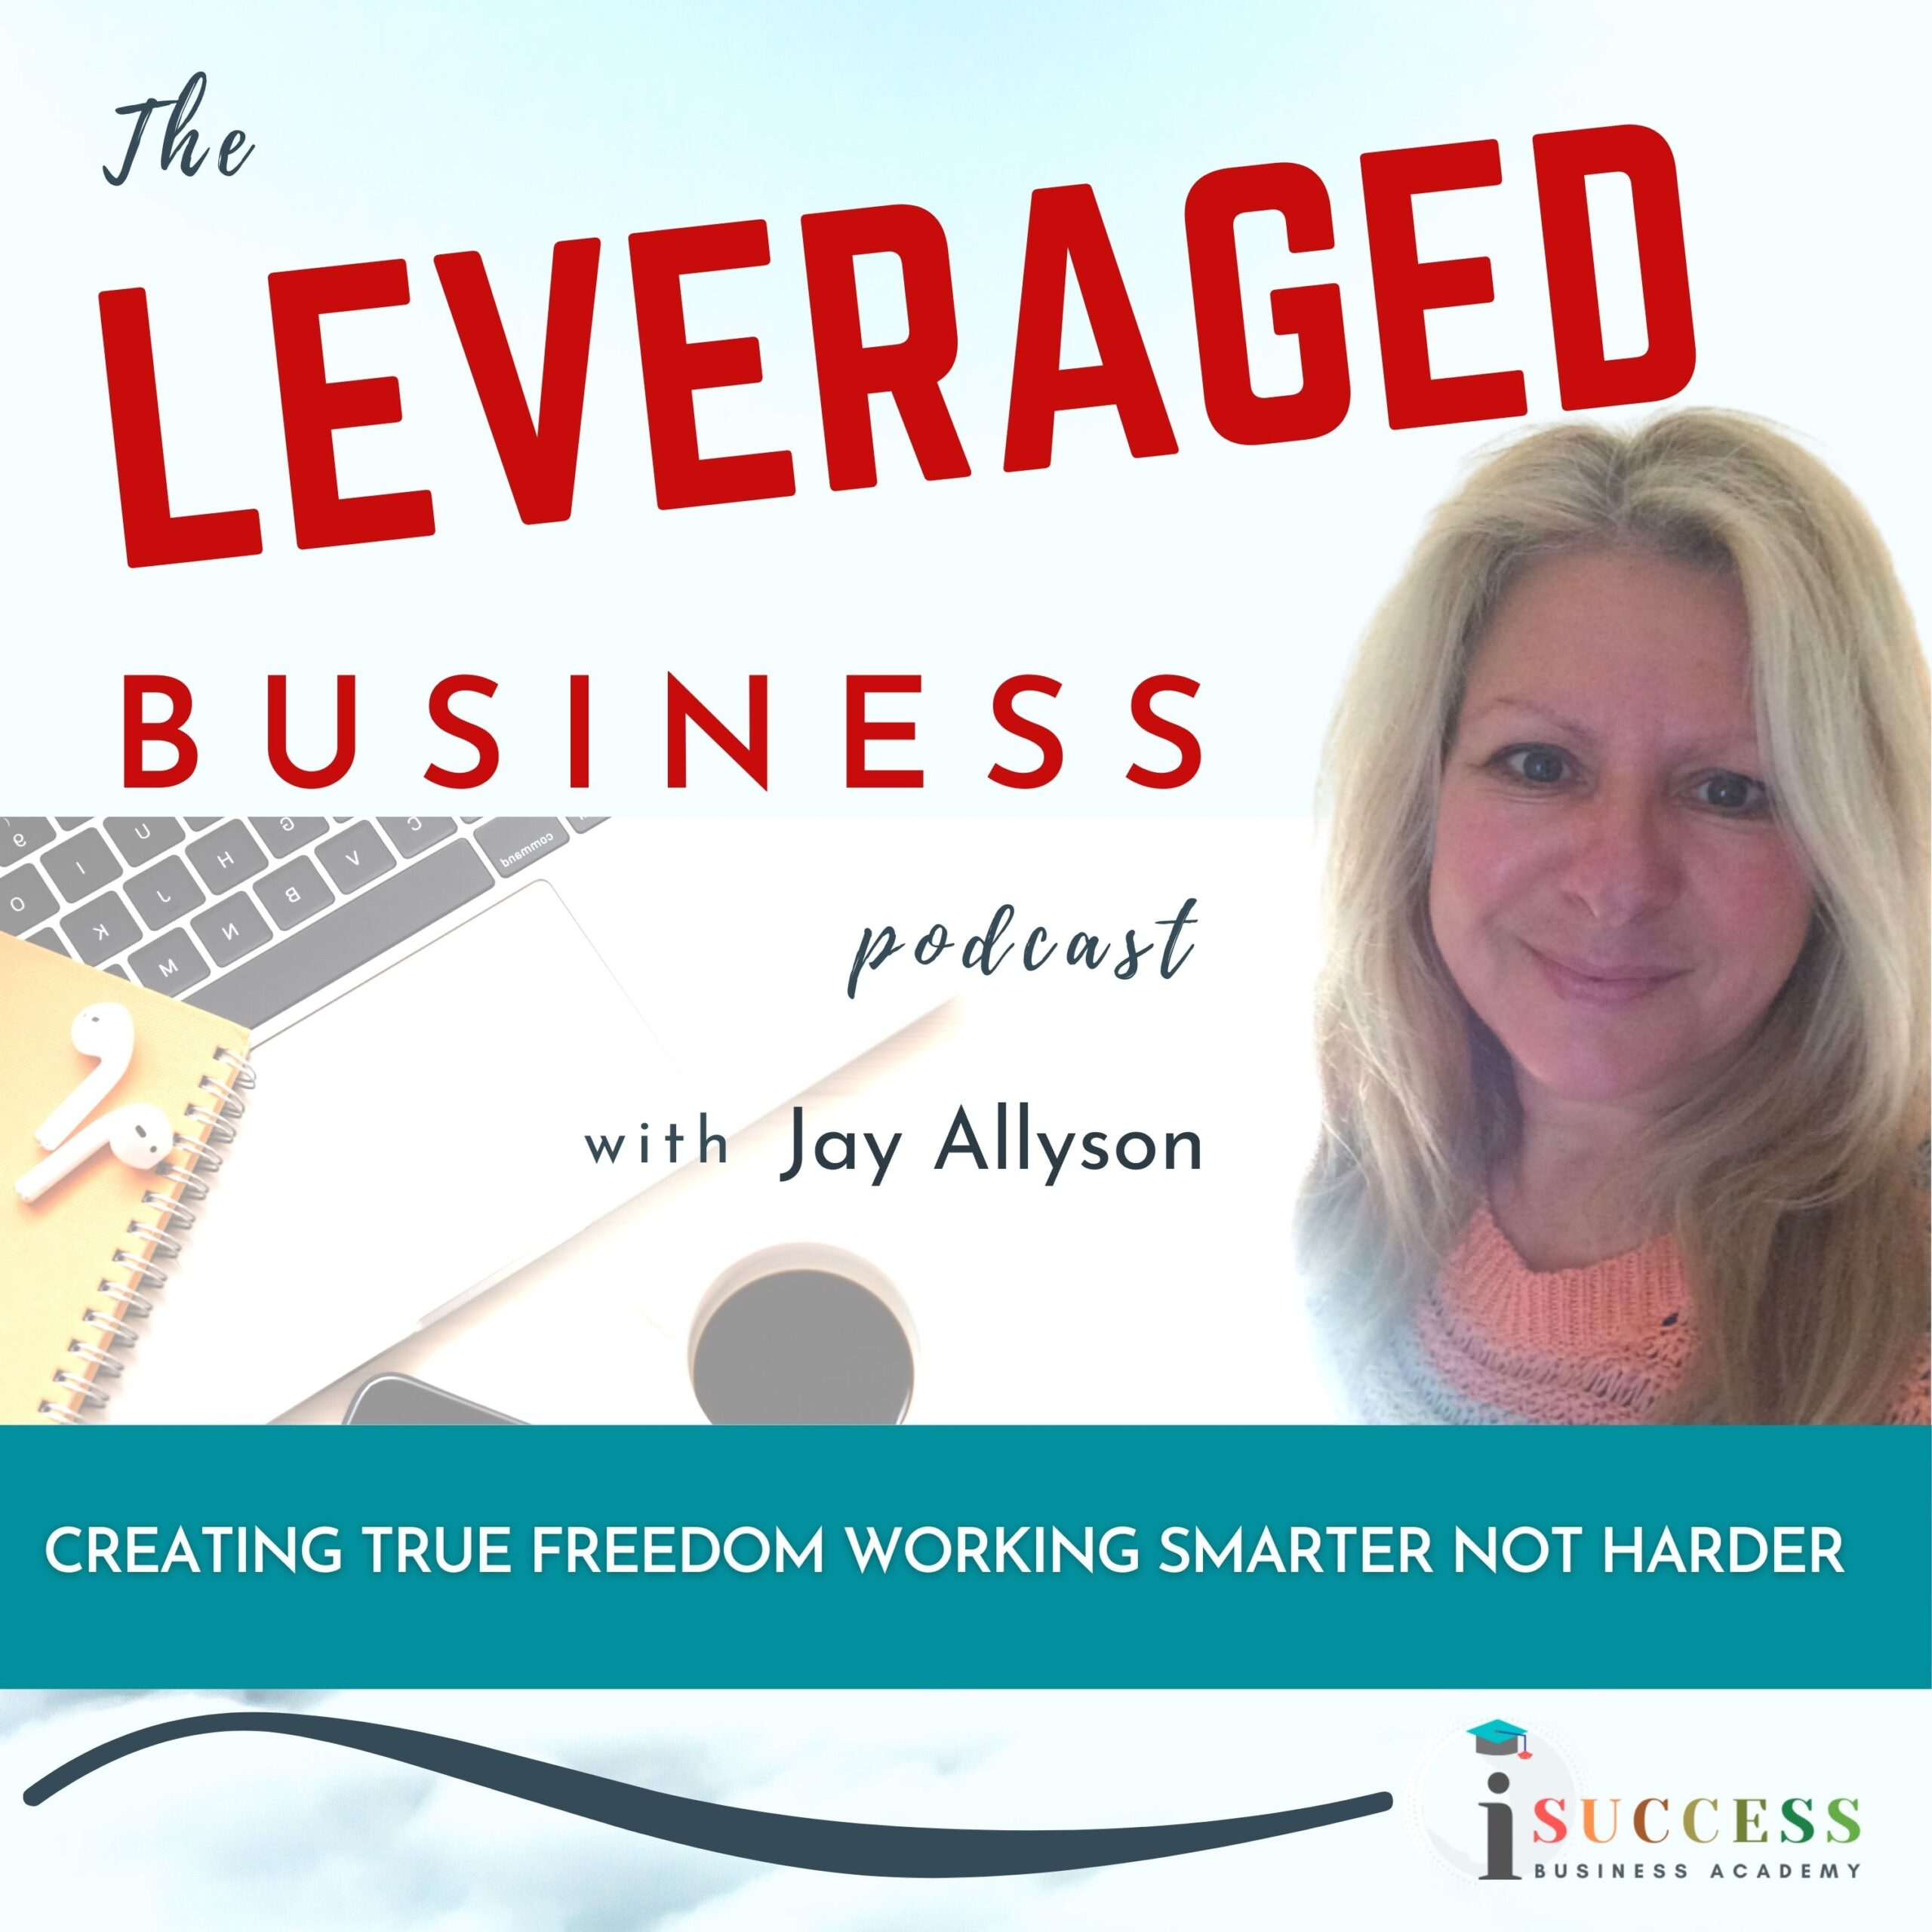 the leveraged business podcast cover image